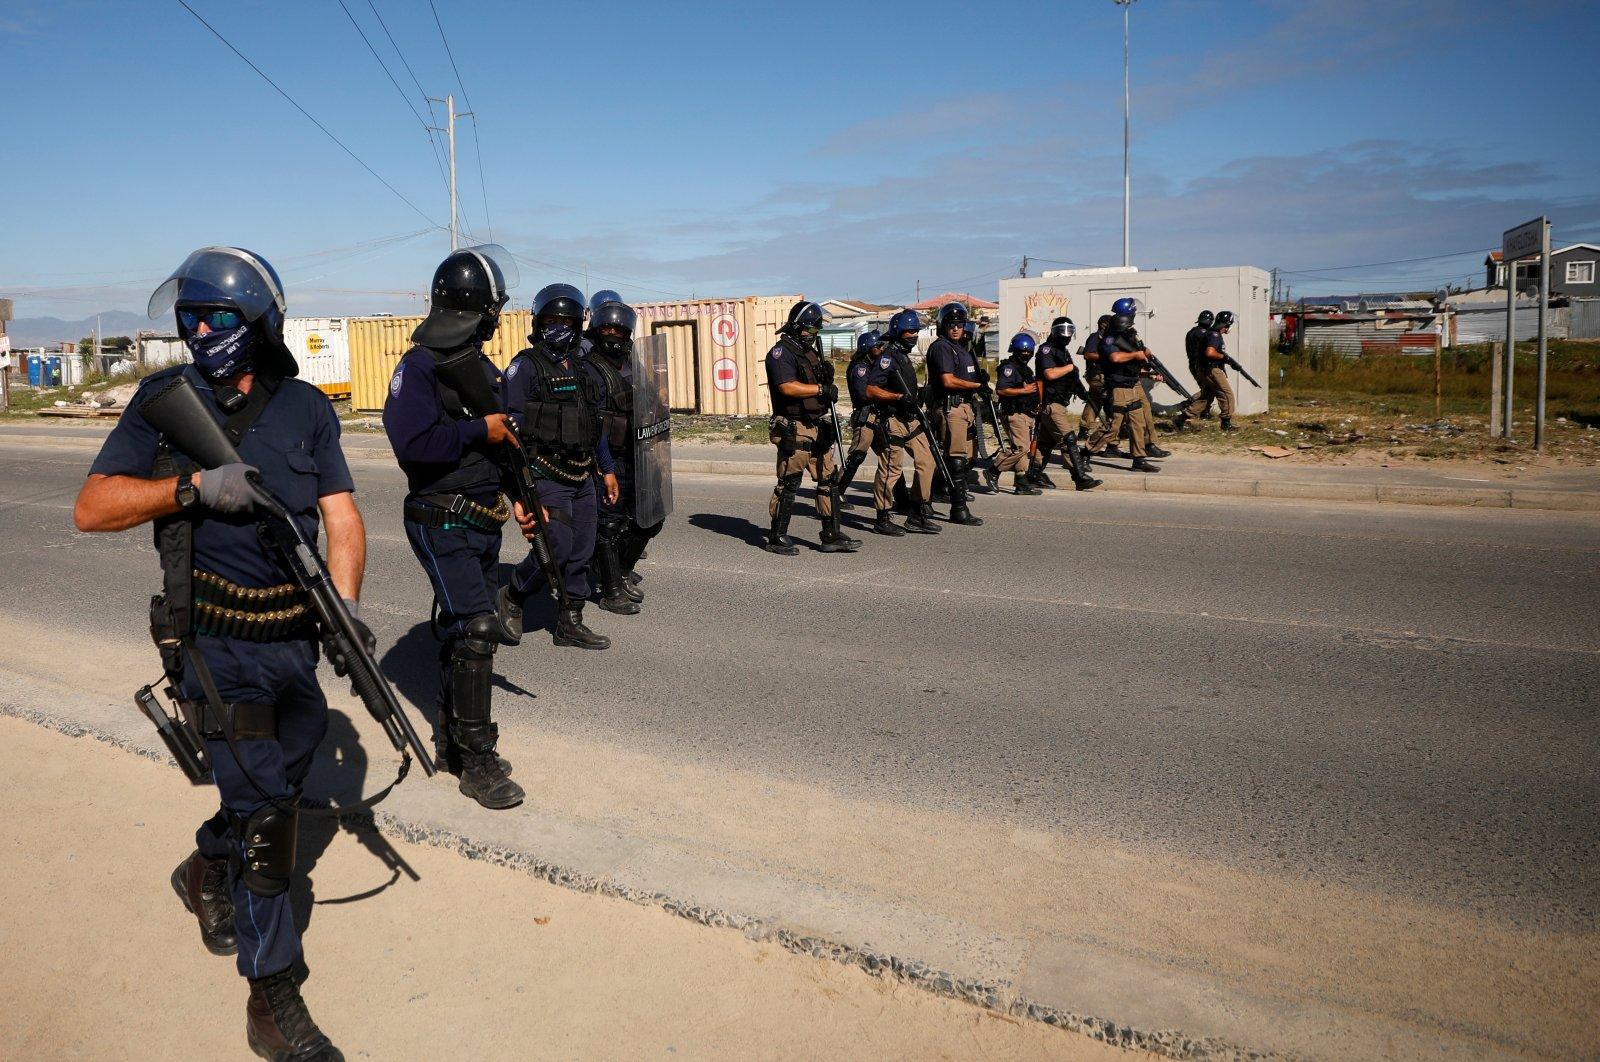 Police officers patrol the streets during a nationwide lockdown aimed at limiting the spread of the coronavirus disease (COVID-19), Cape Town, April 21, 2020. (REUTERS Photo)